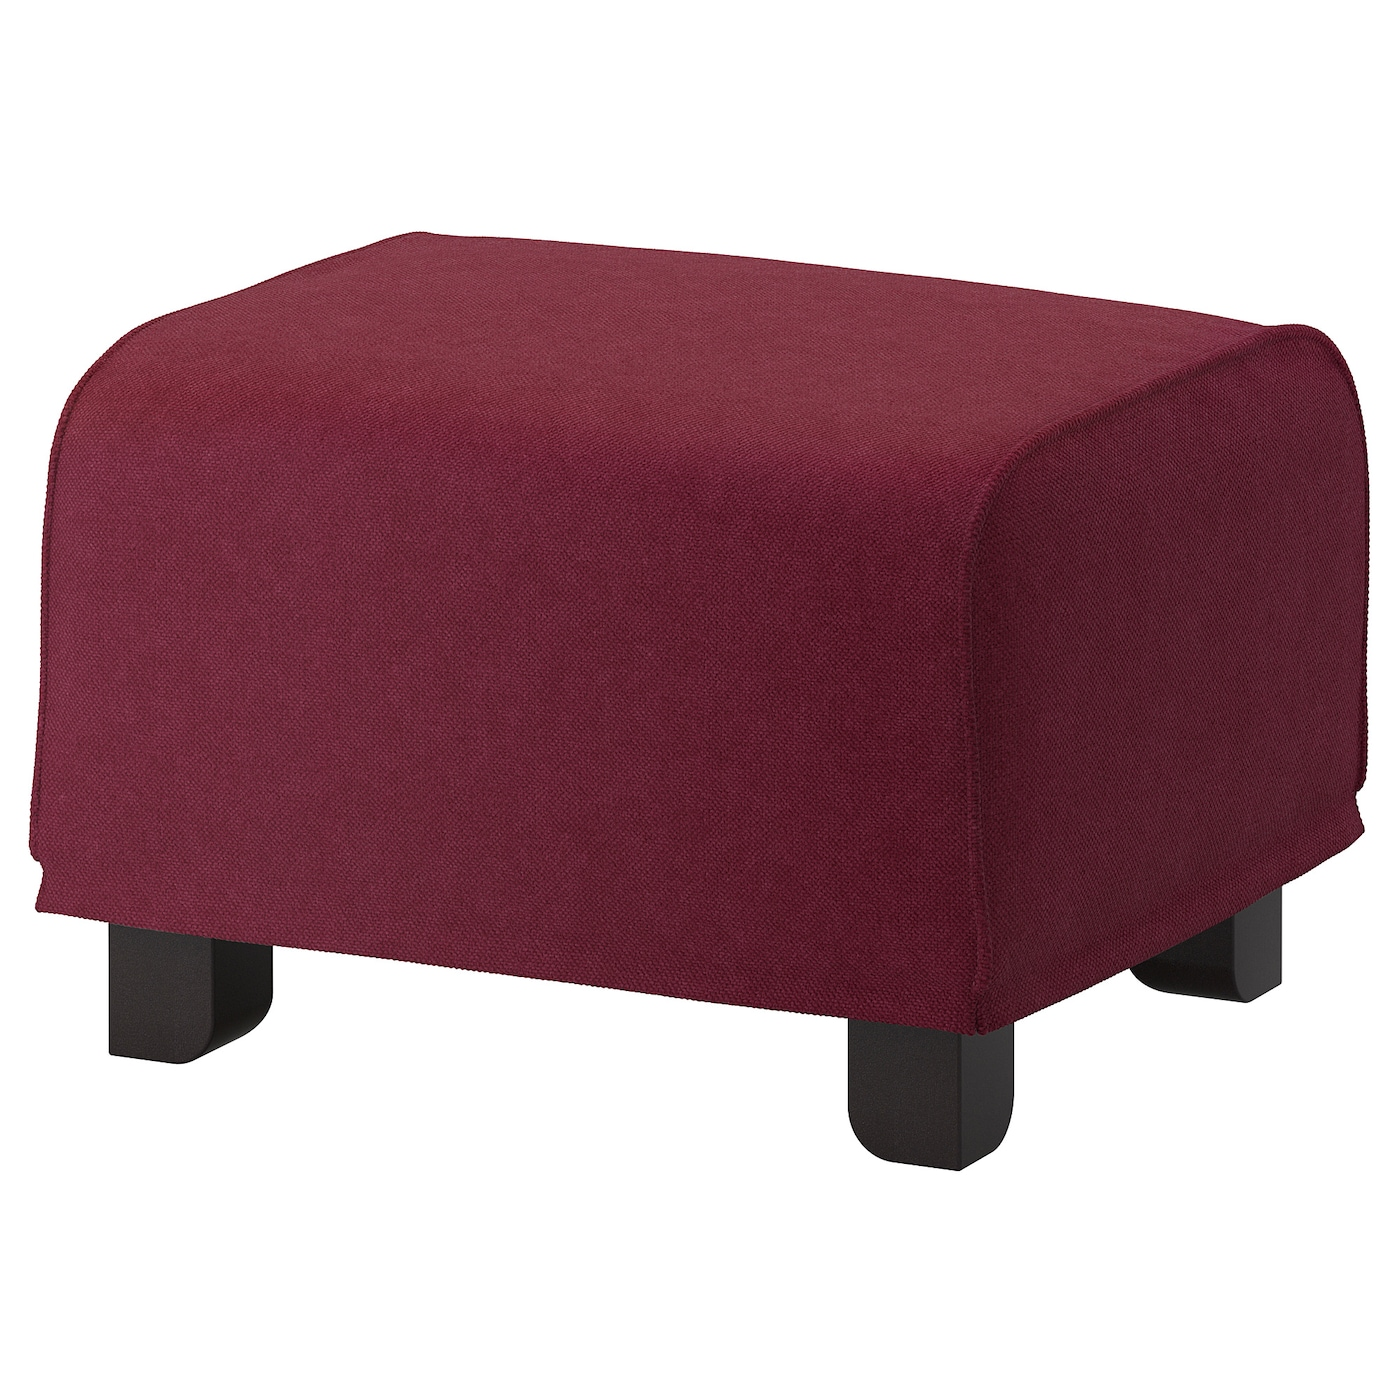 IKEA GRÖNLID footstool The curved and steady legs are made of solid birch.